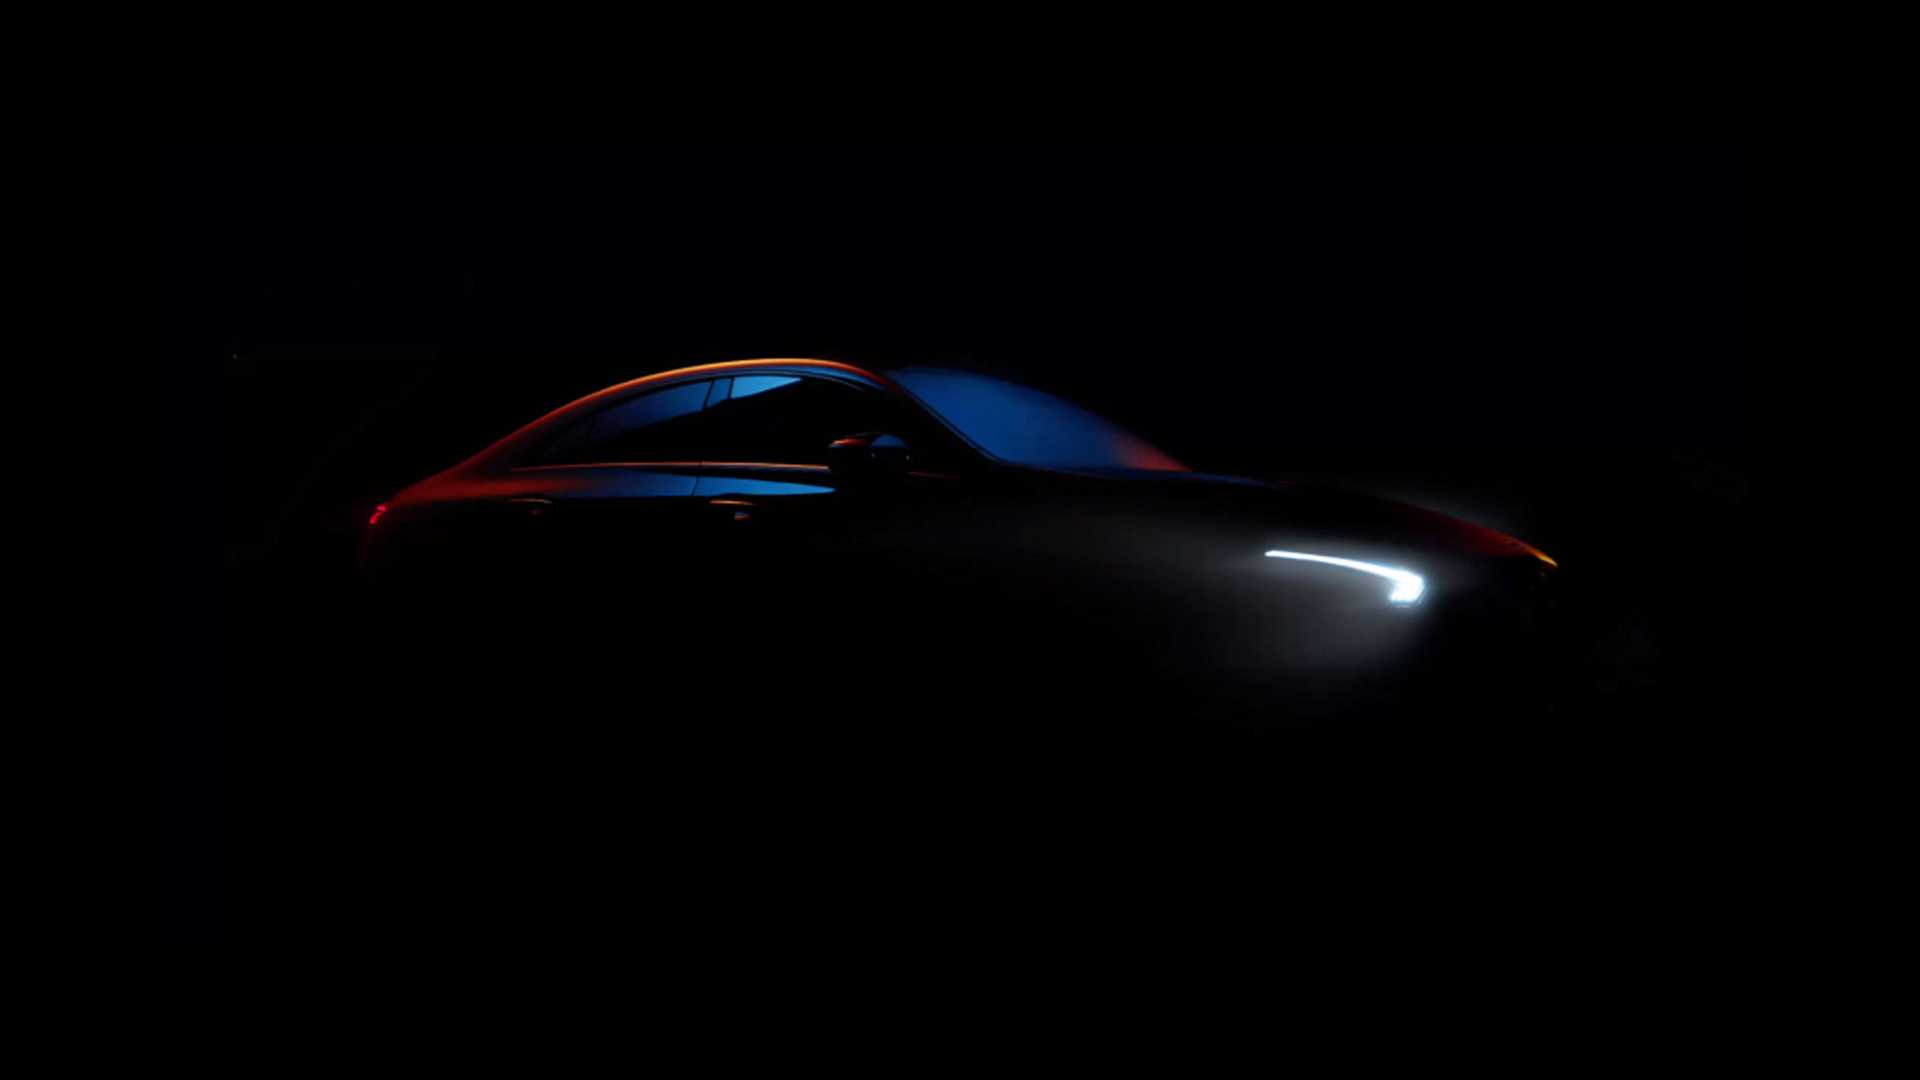 2020 Mercedes CLA Class Teaser Reveals The Sedans New Eyes 1920x1080